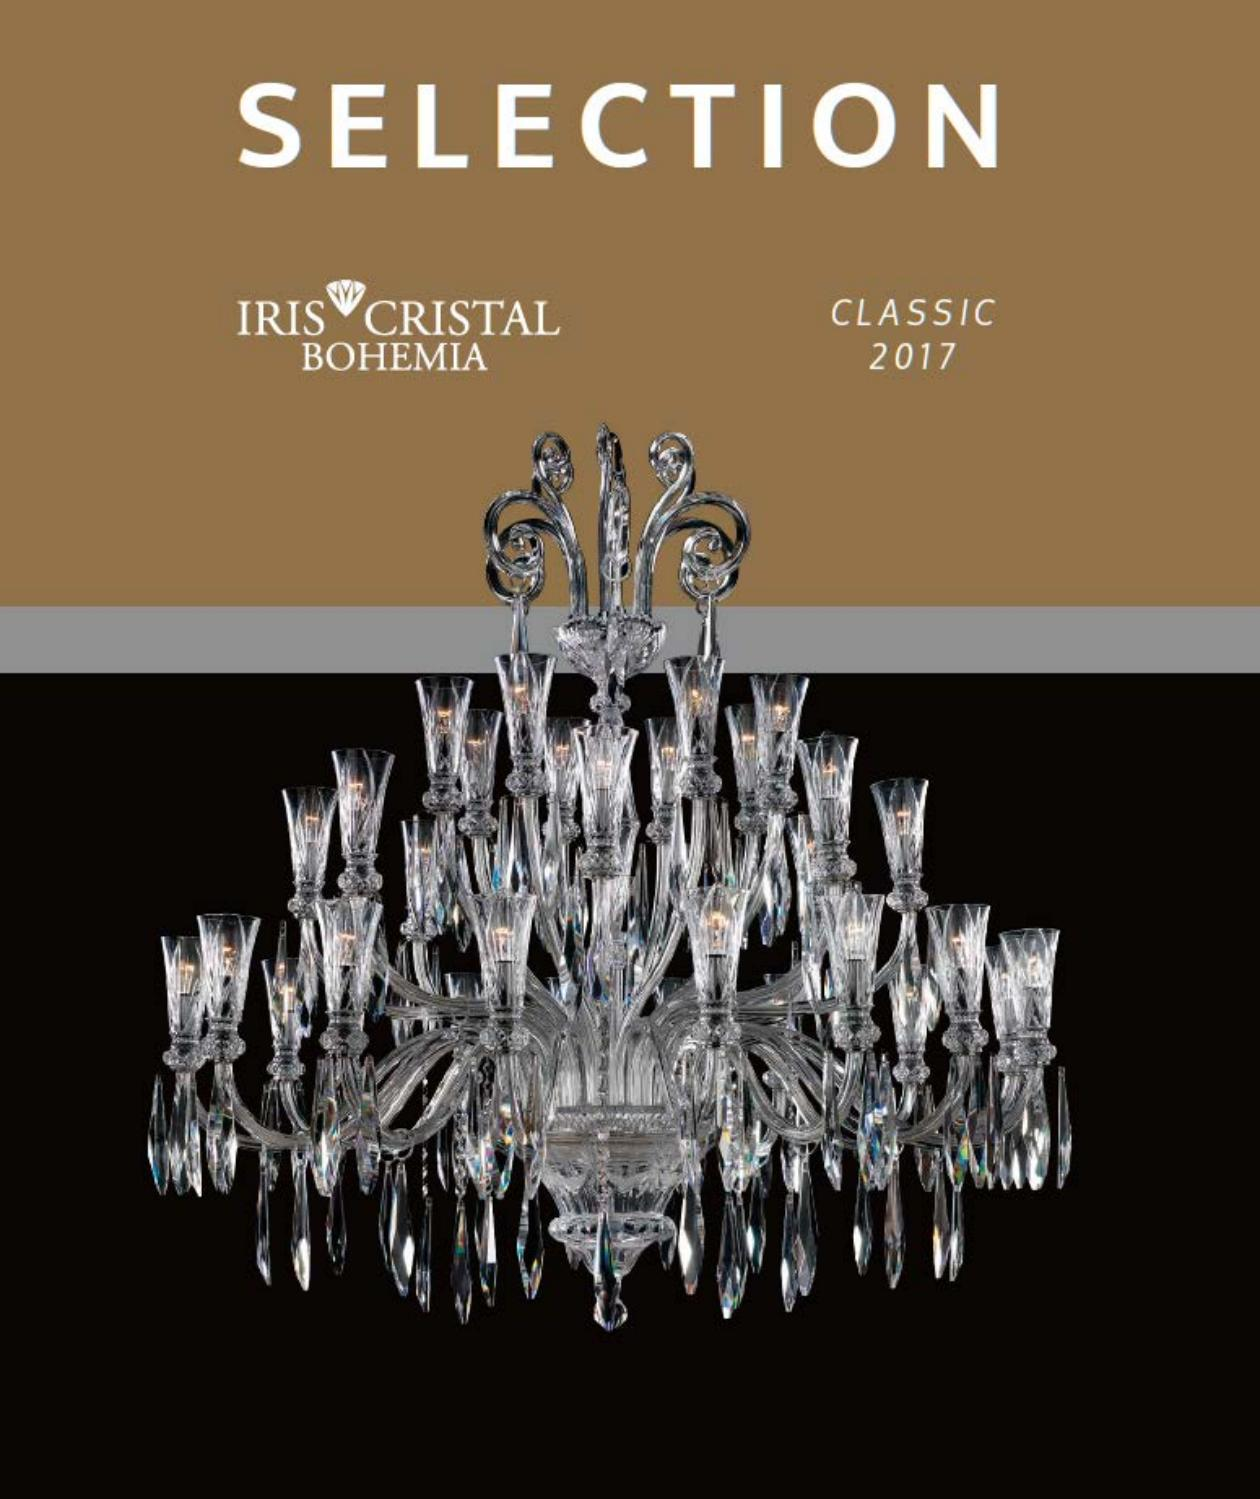 Lamparas De Cristal De Bohemia Iris Crystal Selection Clasico By Larsa Lighting Issuu